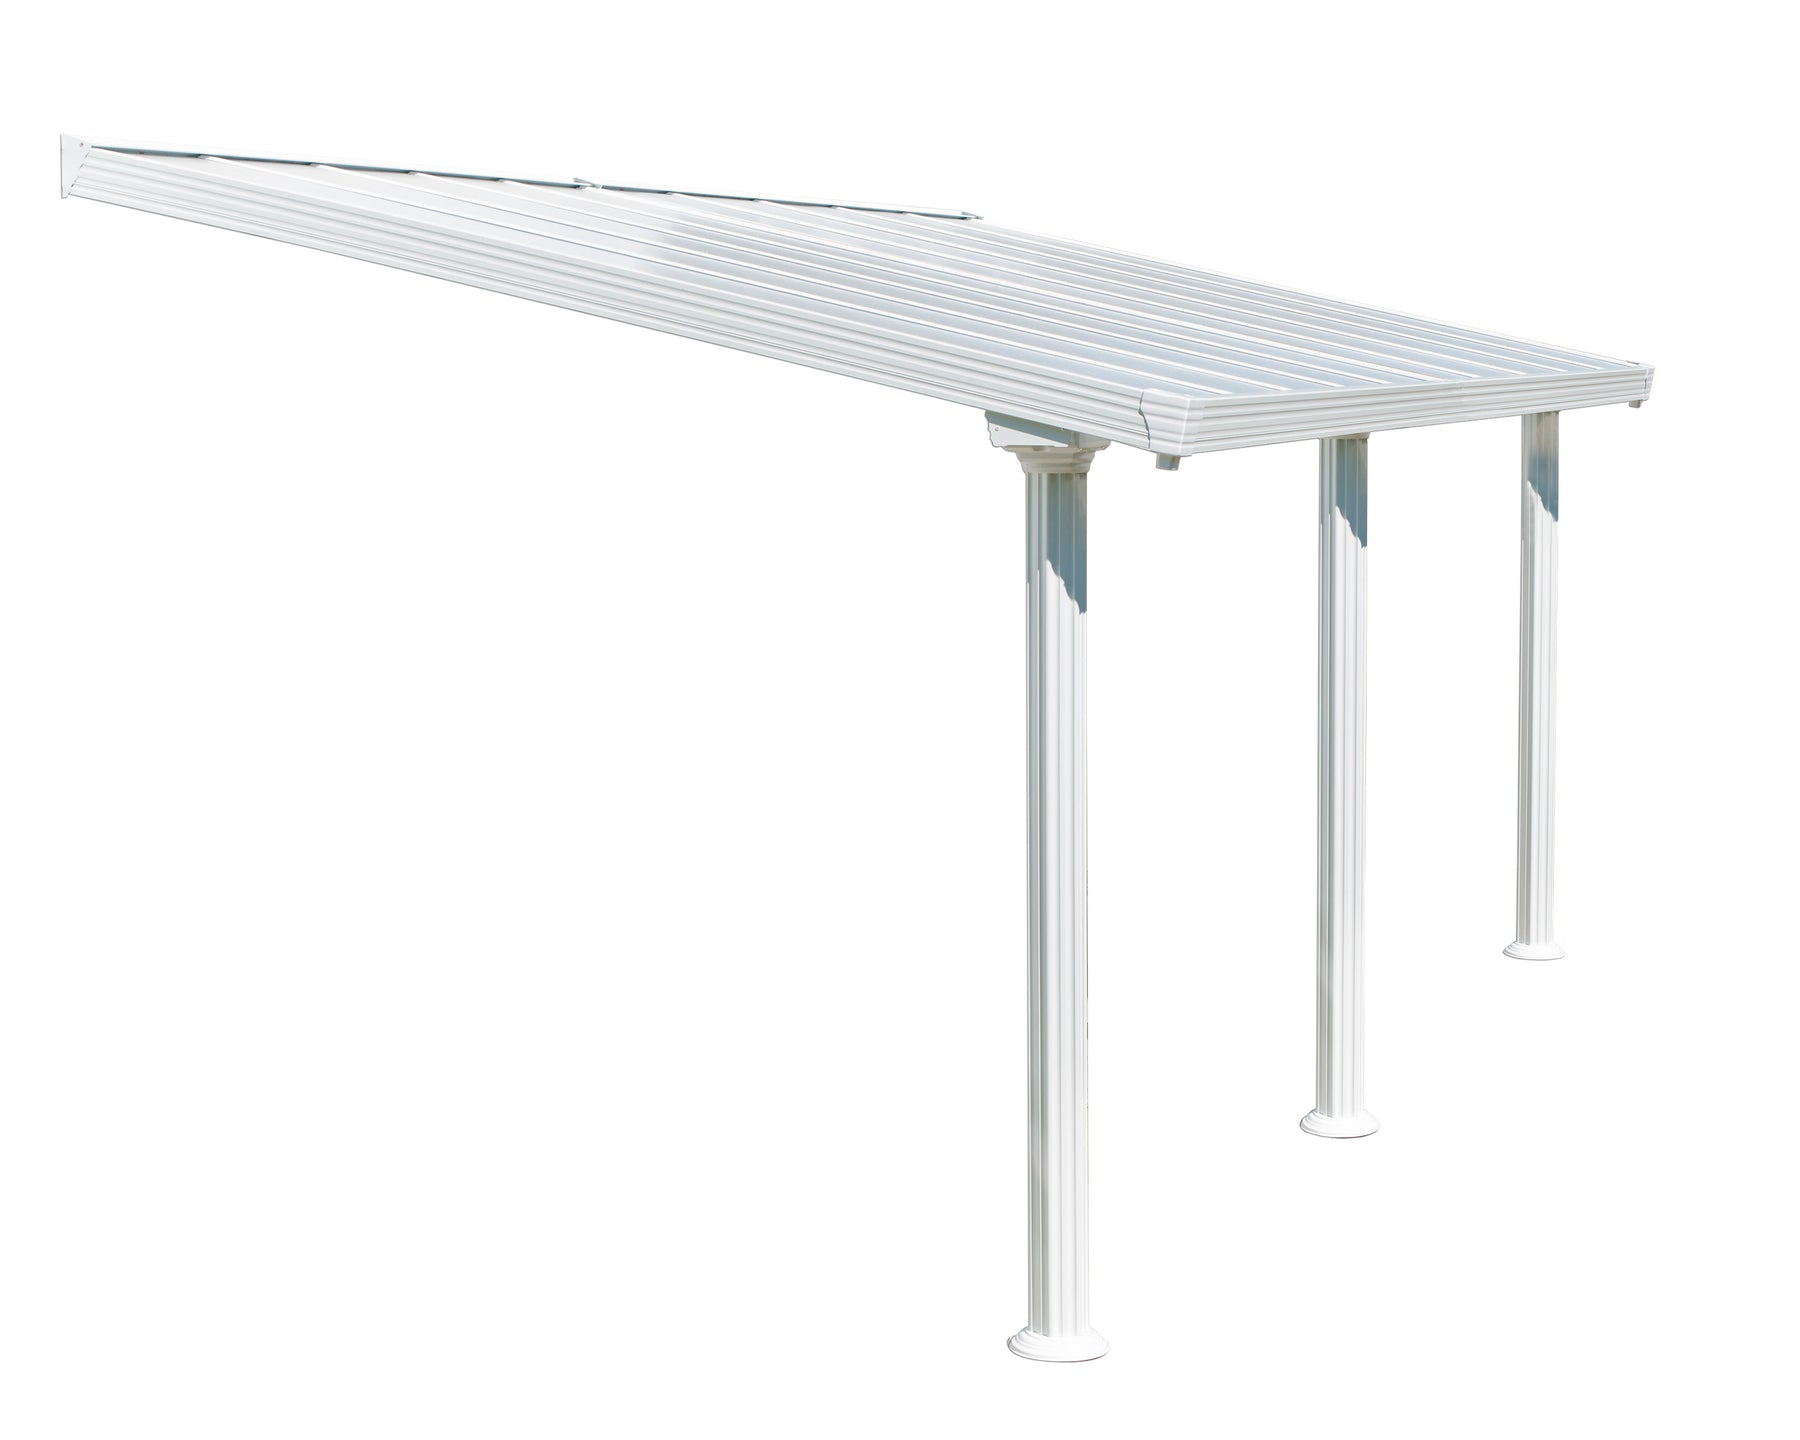 Palram Feria Patio Covers - White Size - 10' x 20':Tuff Nest